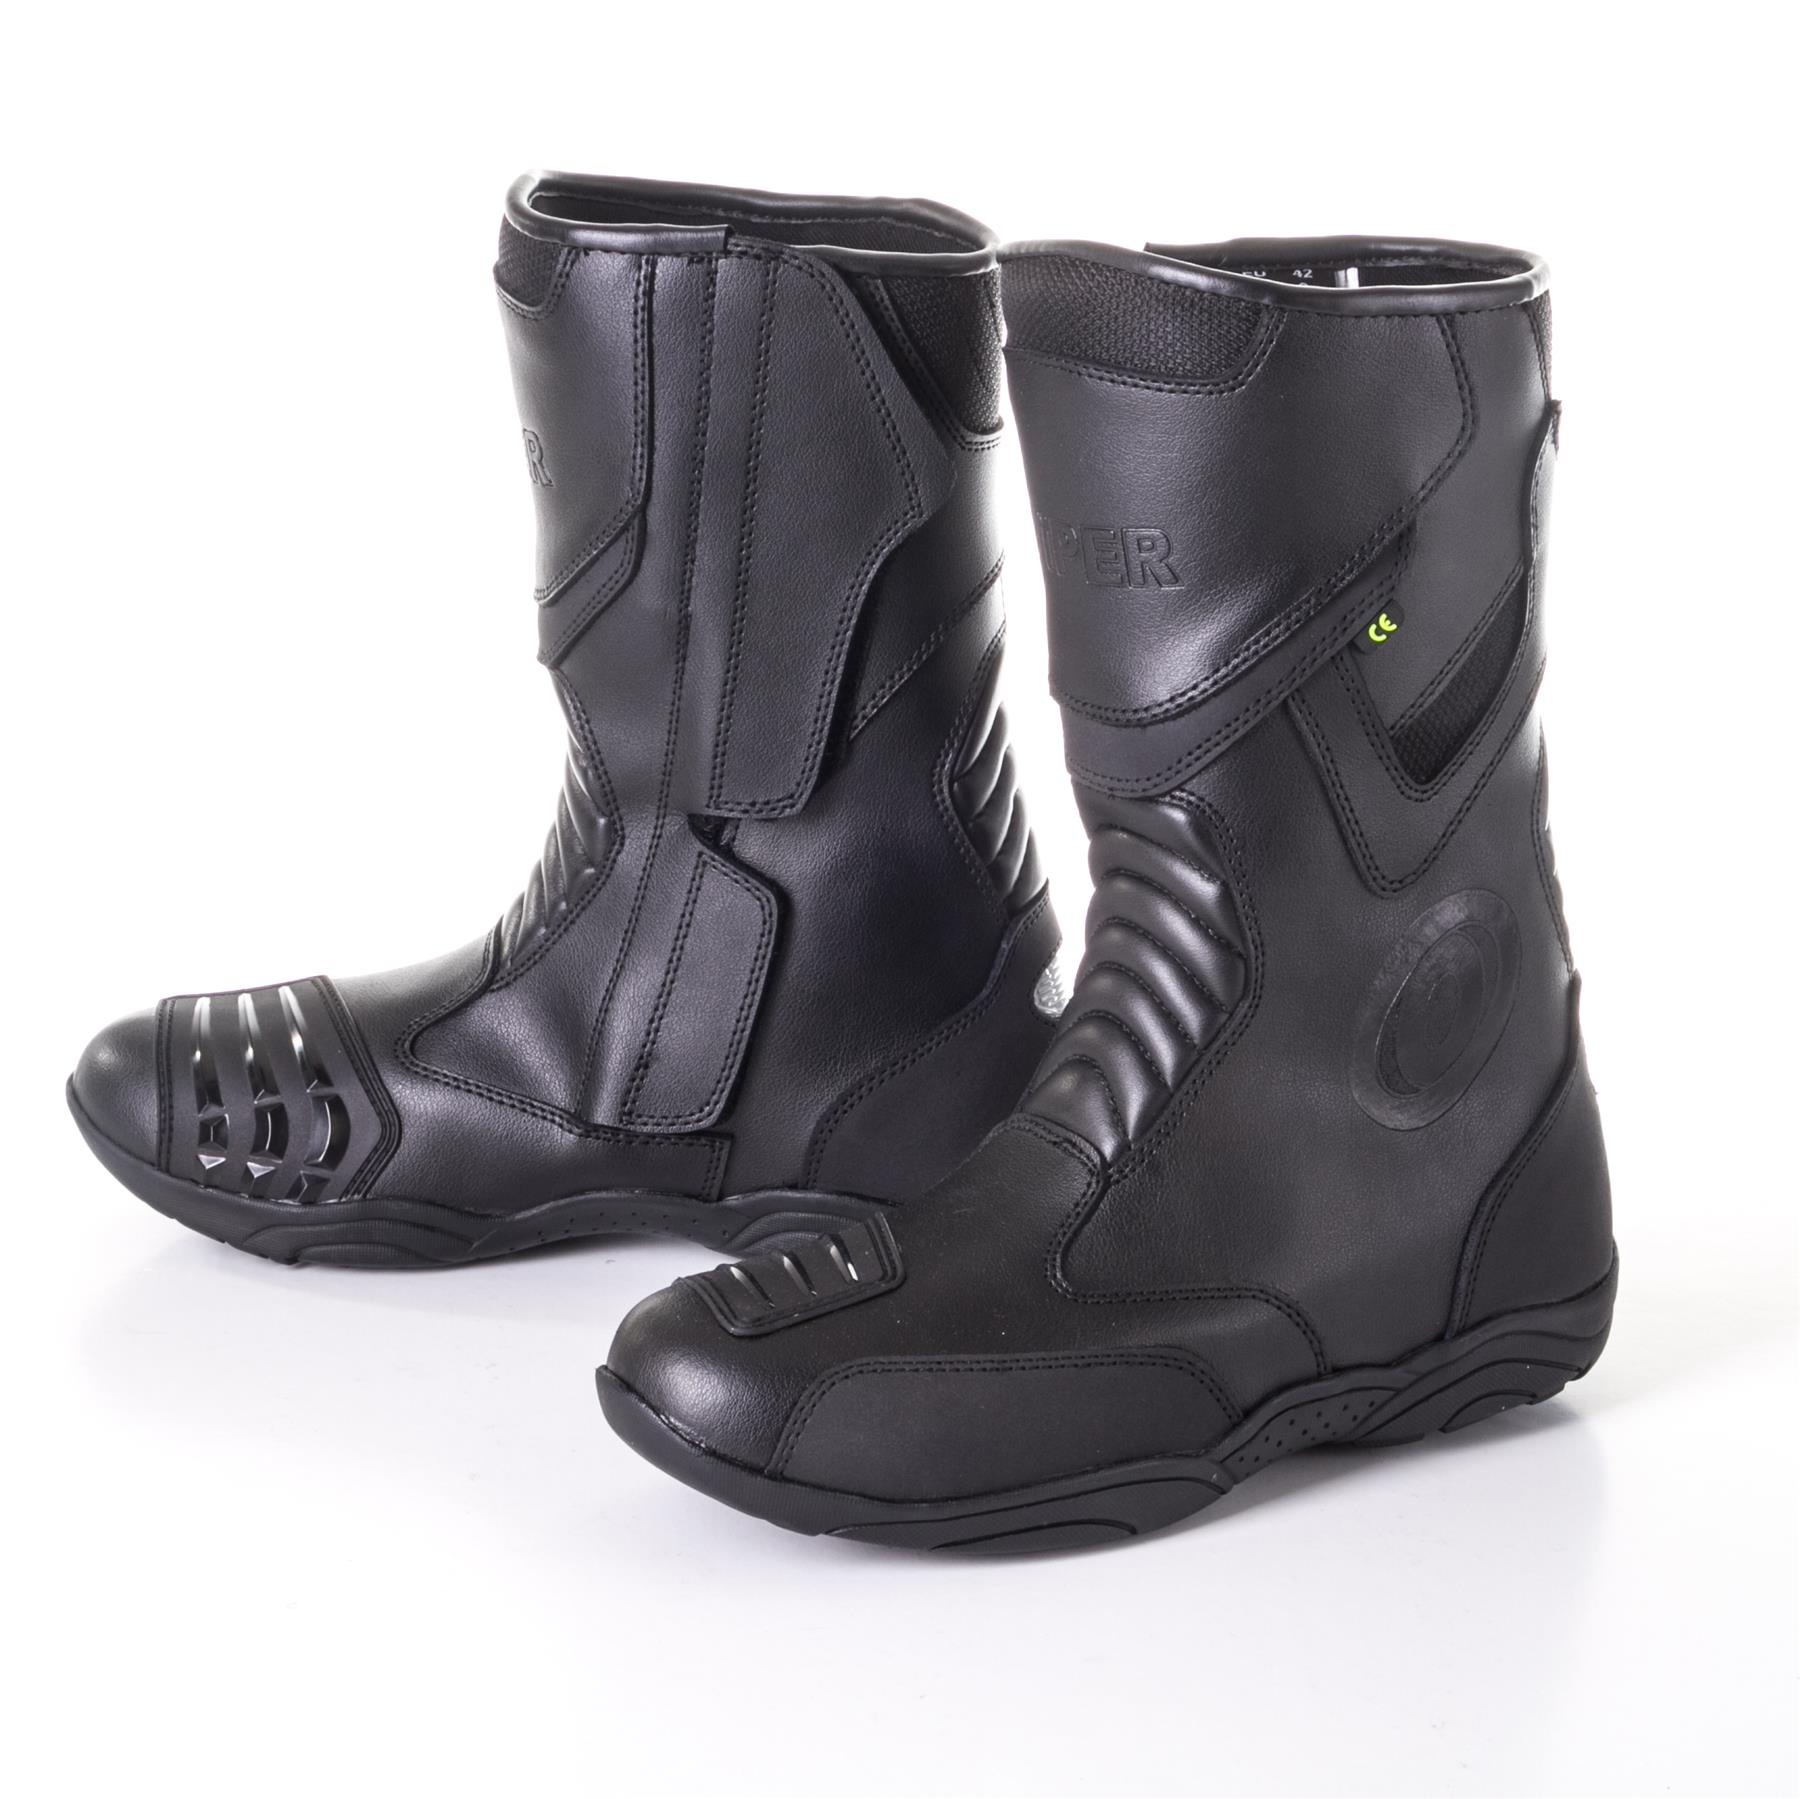 866 CE Approved Long Boot